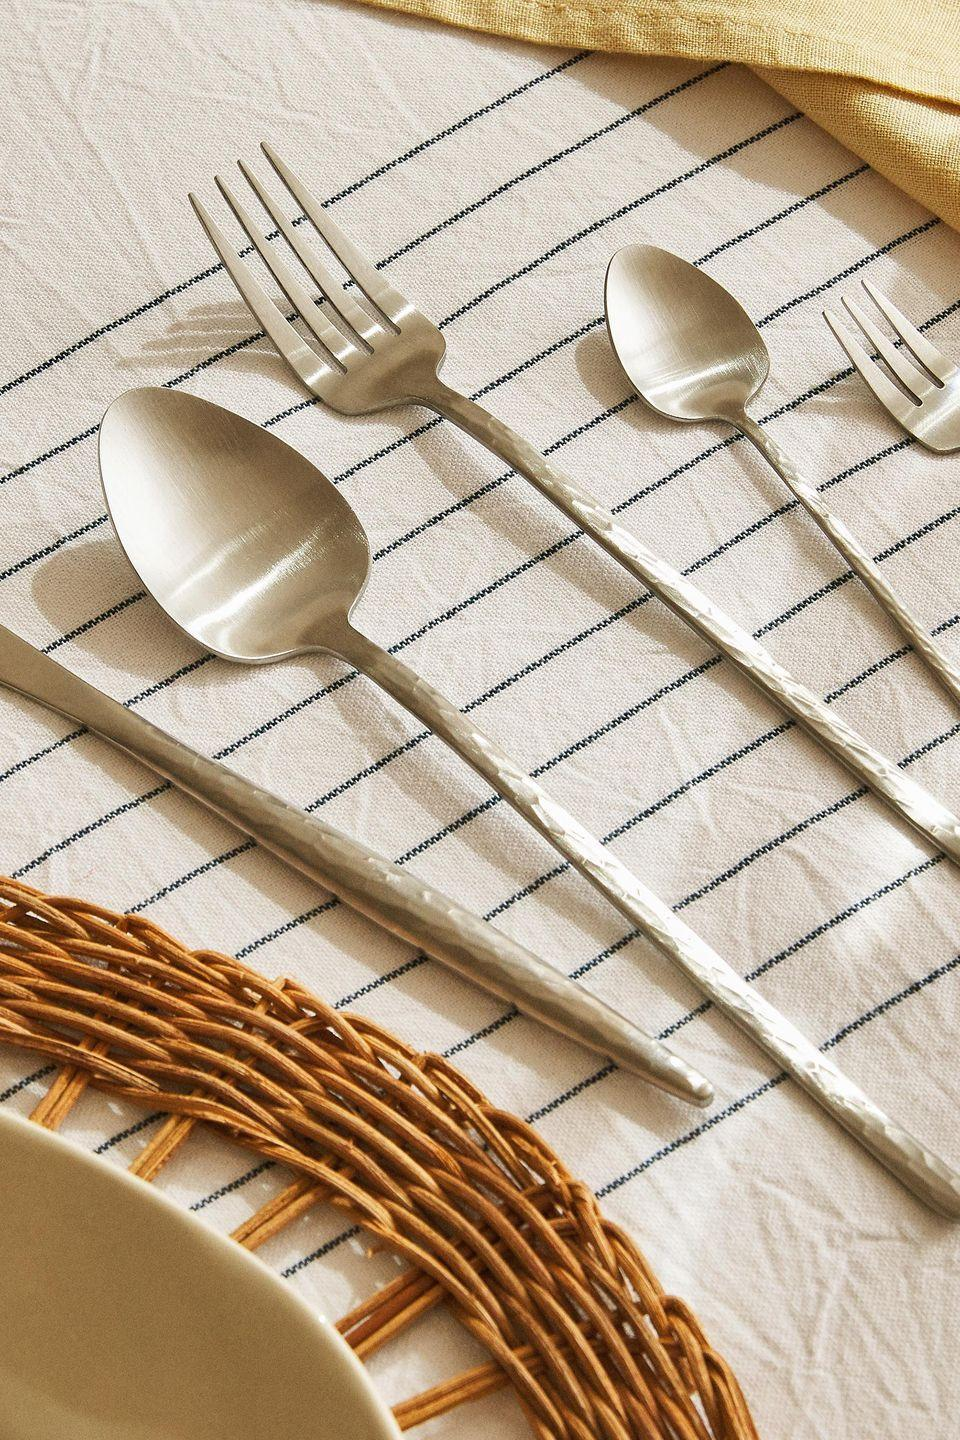 """<p>Add a tactile quality to meal times with Zara's subtly textured stainless steel cutlery. Its gently hammered surface, matt finish and elegant handle shape will ensure your table settings always look Instagram-ready. From £17.99 for a set of four dessert spoons, <a href=""""https://www.zarahome.com/gb/"""" rel=""""nofollow noopener"""" target=""""_blank"""" data-ylk=""""slk:zarahome.com"""" class=""""link rapid-noclick-resp"""">zarahome.com</a></p>"""